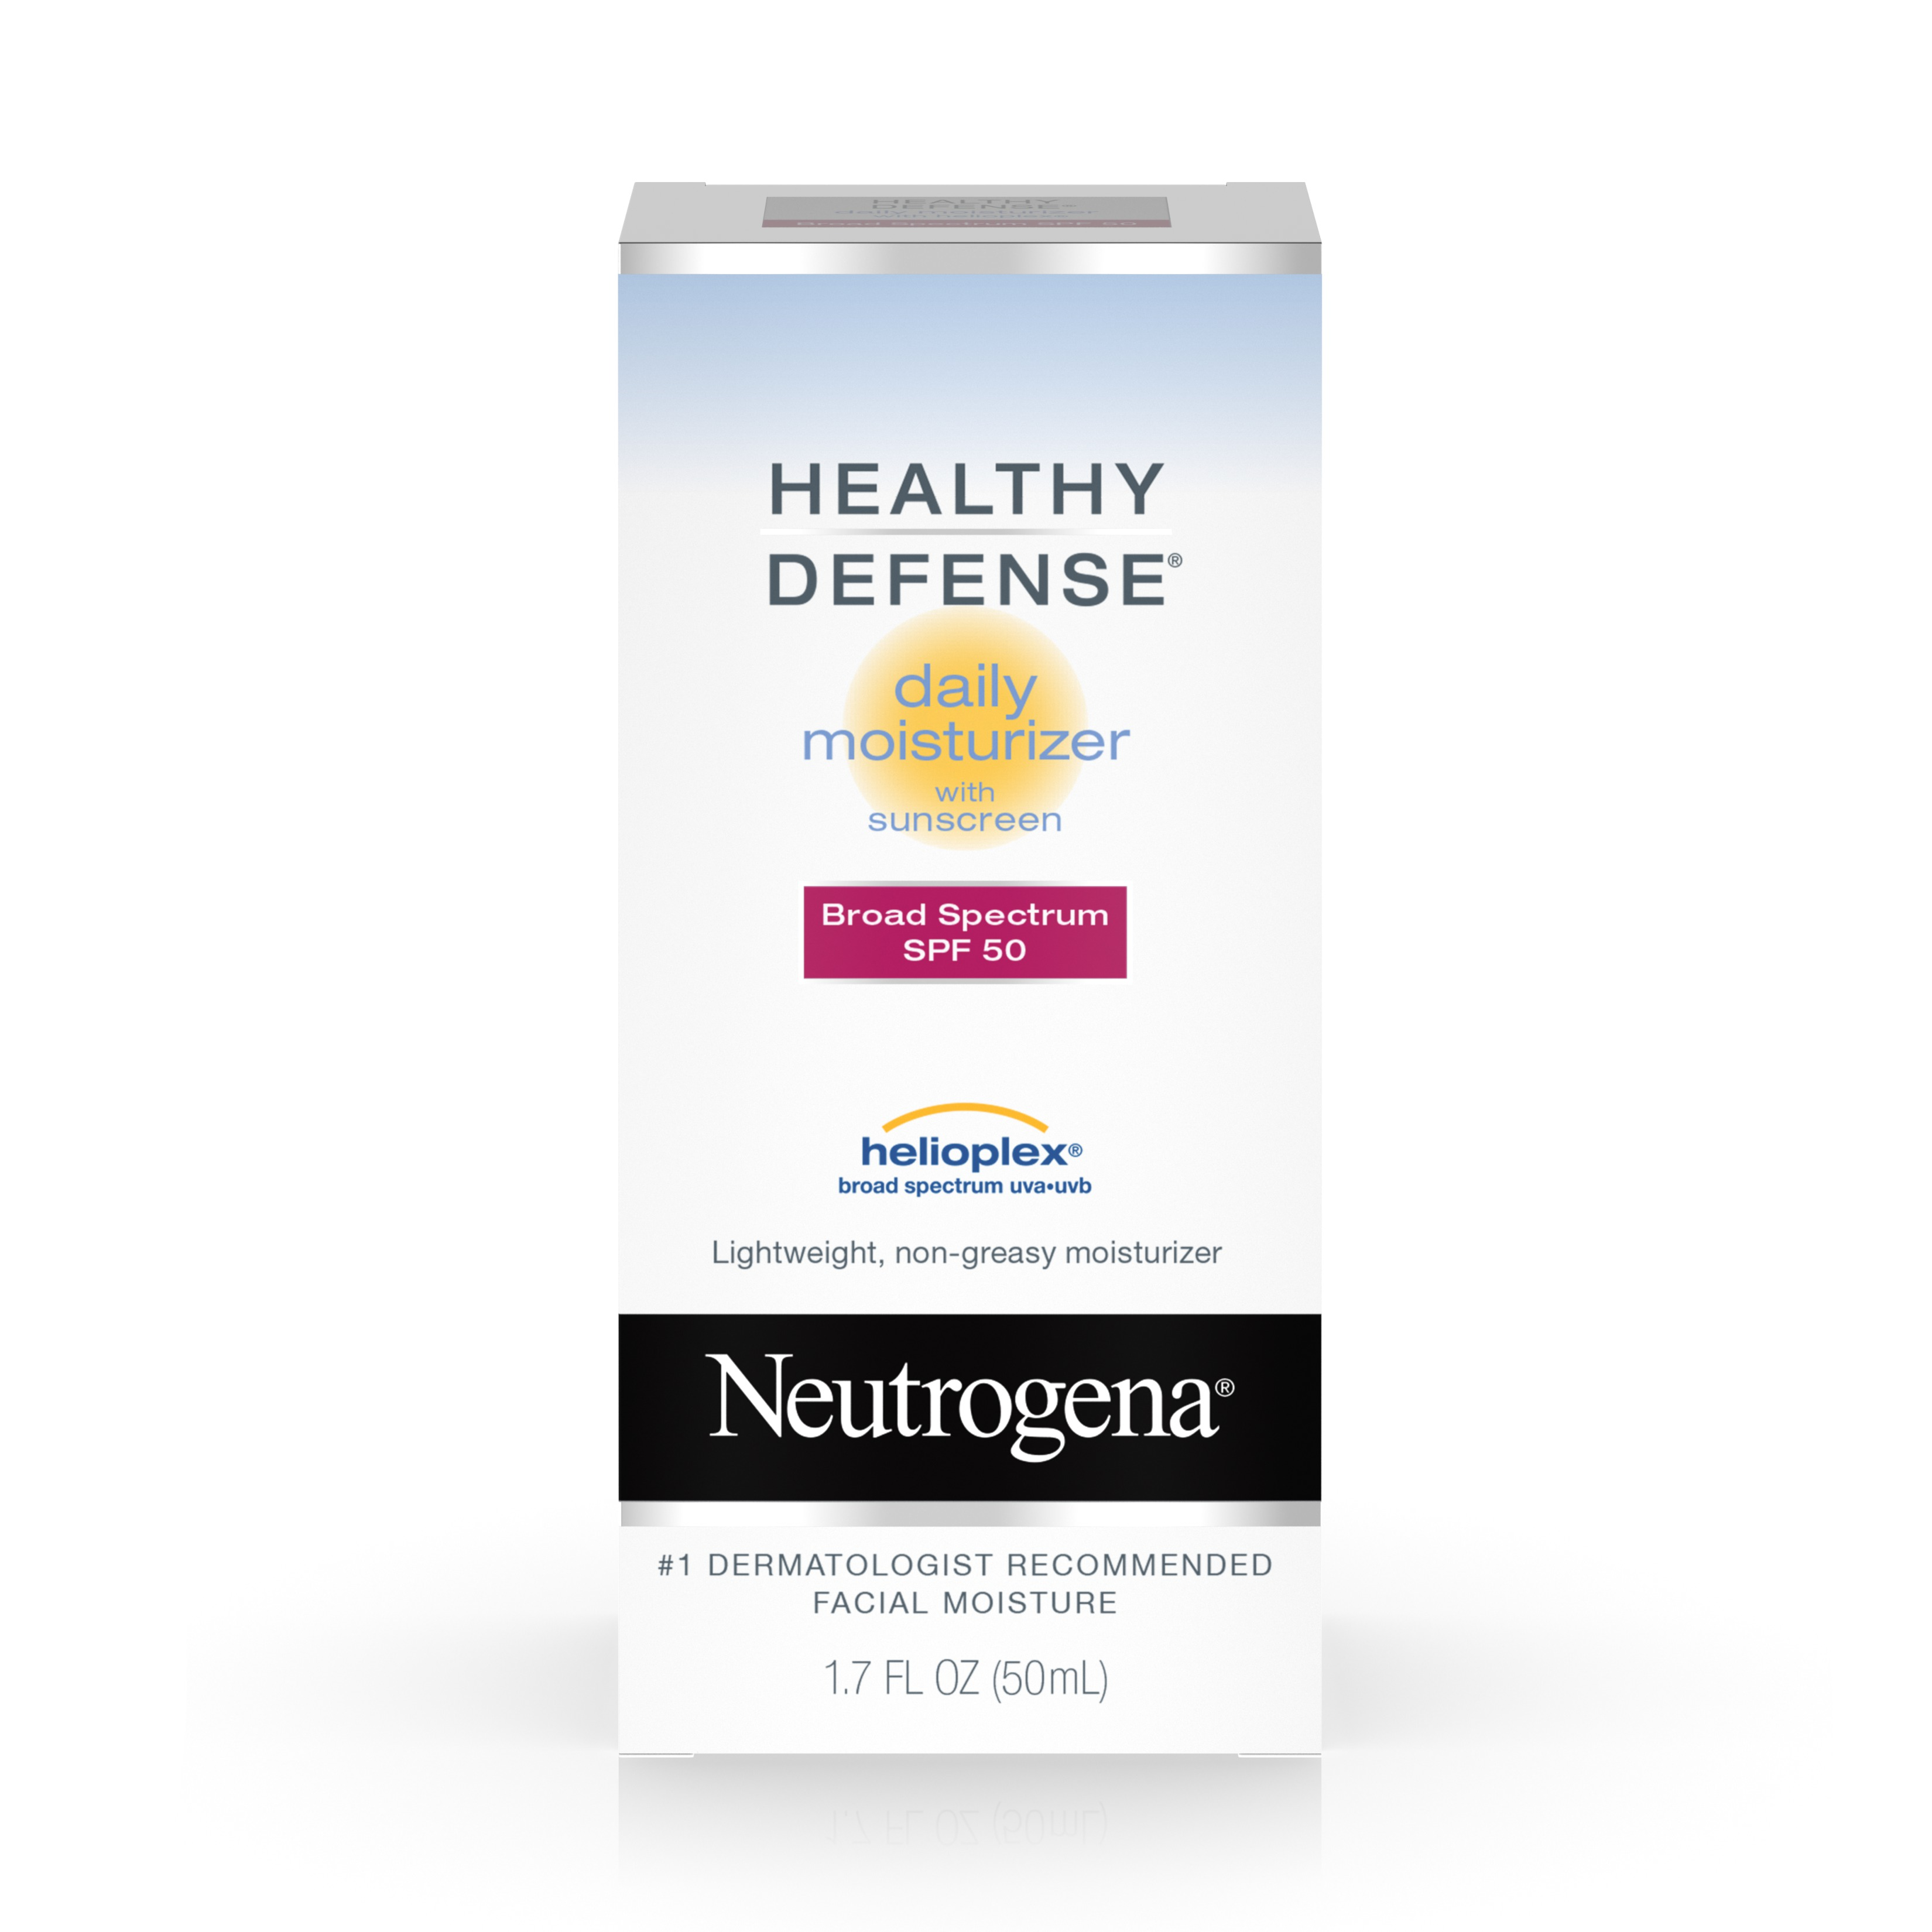 Neutrogena Healthy Defense Daily Moisturizer With Broad Spectrum Spf 50 Sunscreen, 1.7 Fl. Oz. - Walmart.com